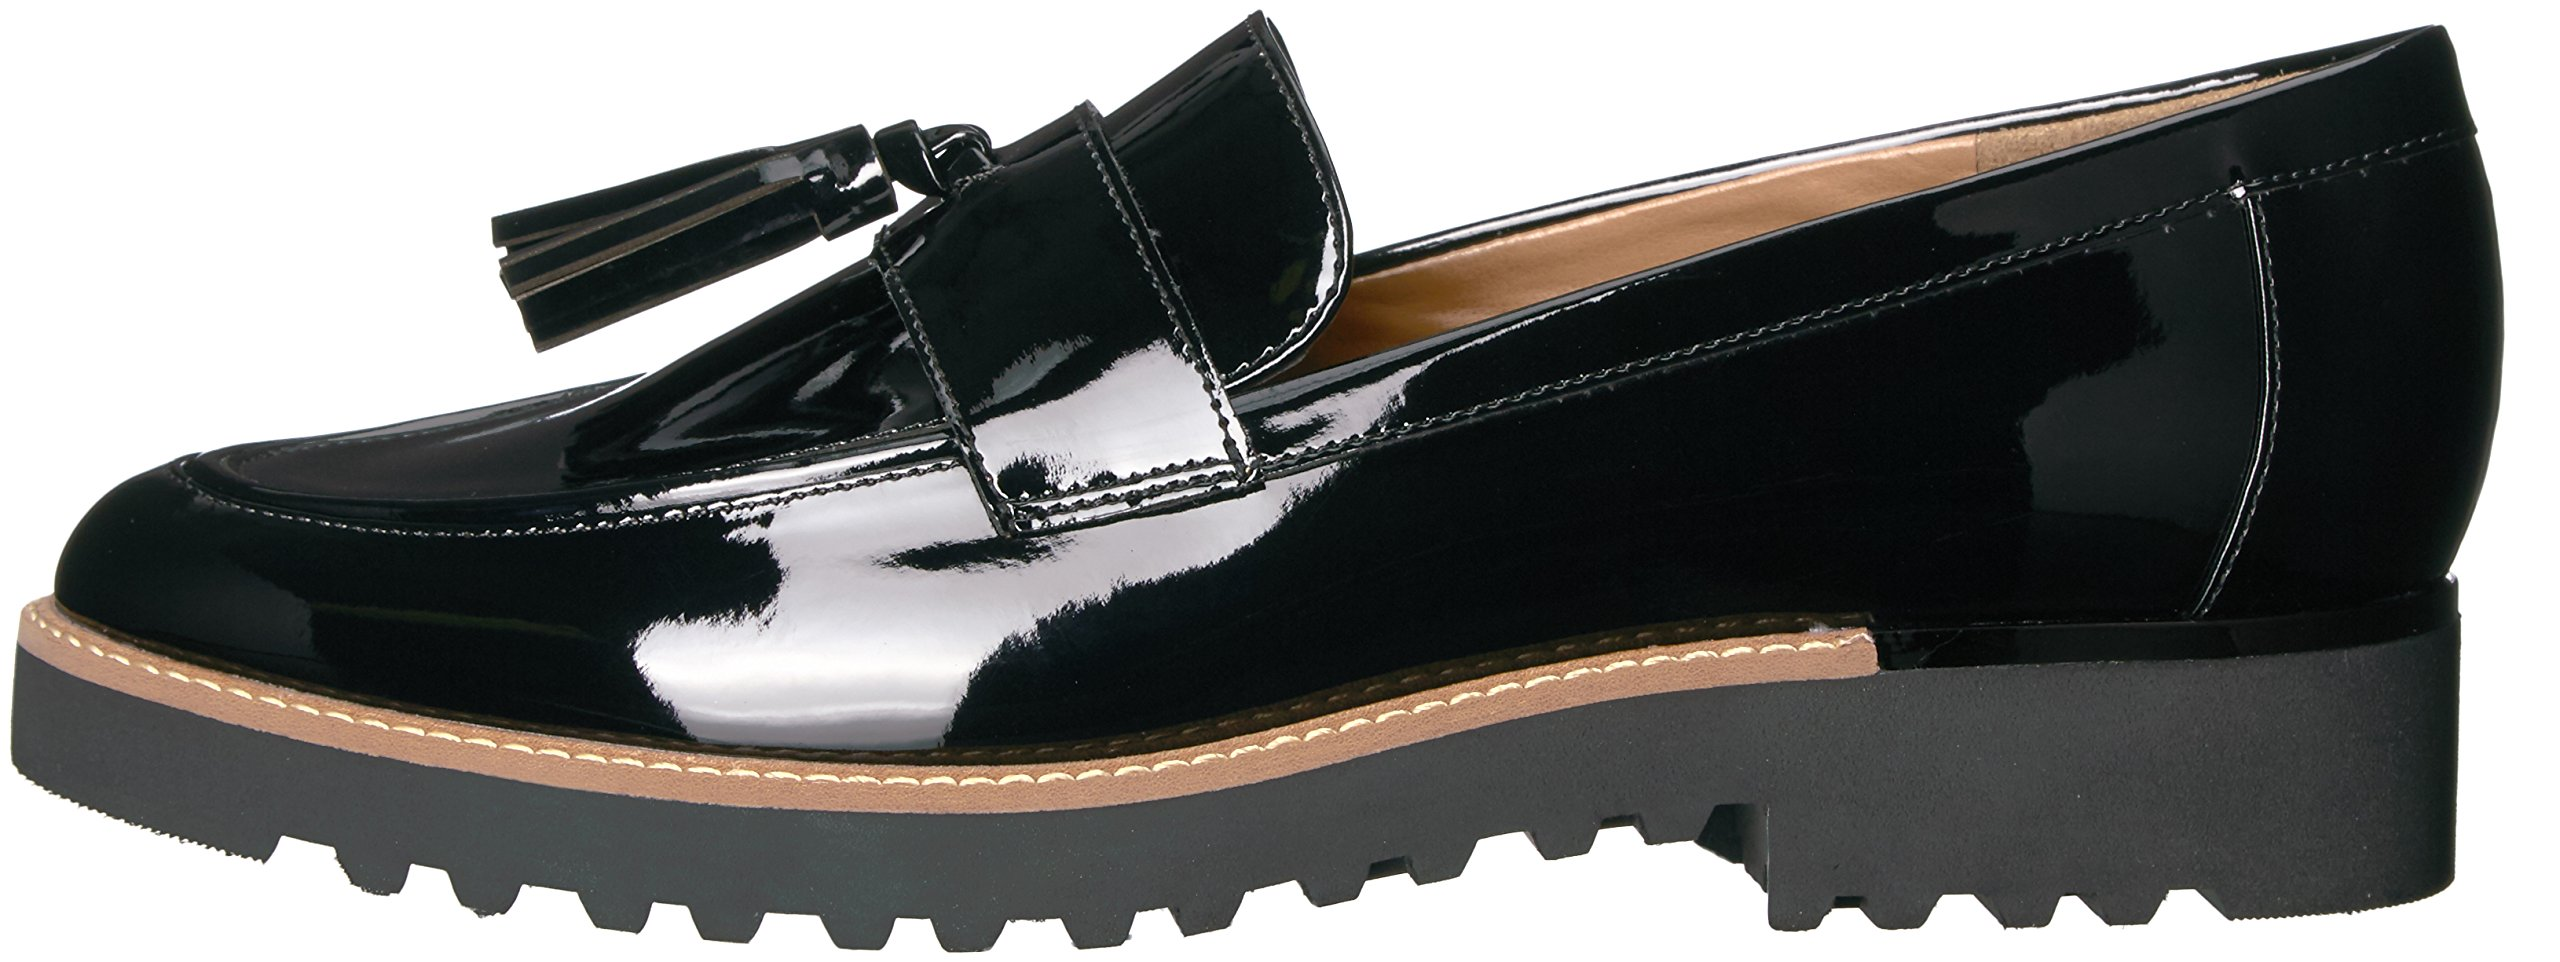 Franco Sarto Women's Carolynn Loafer Flat, Black, 9 M US by Franco Sarto (Image #5)